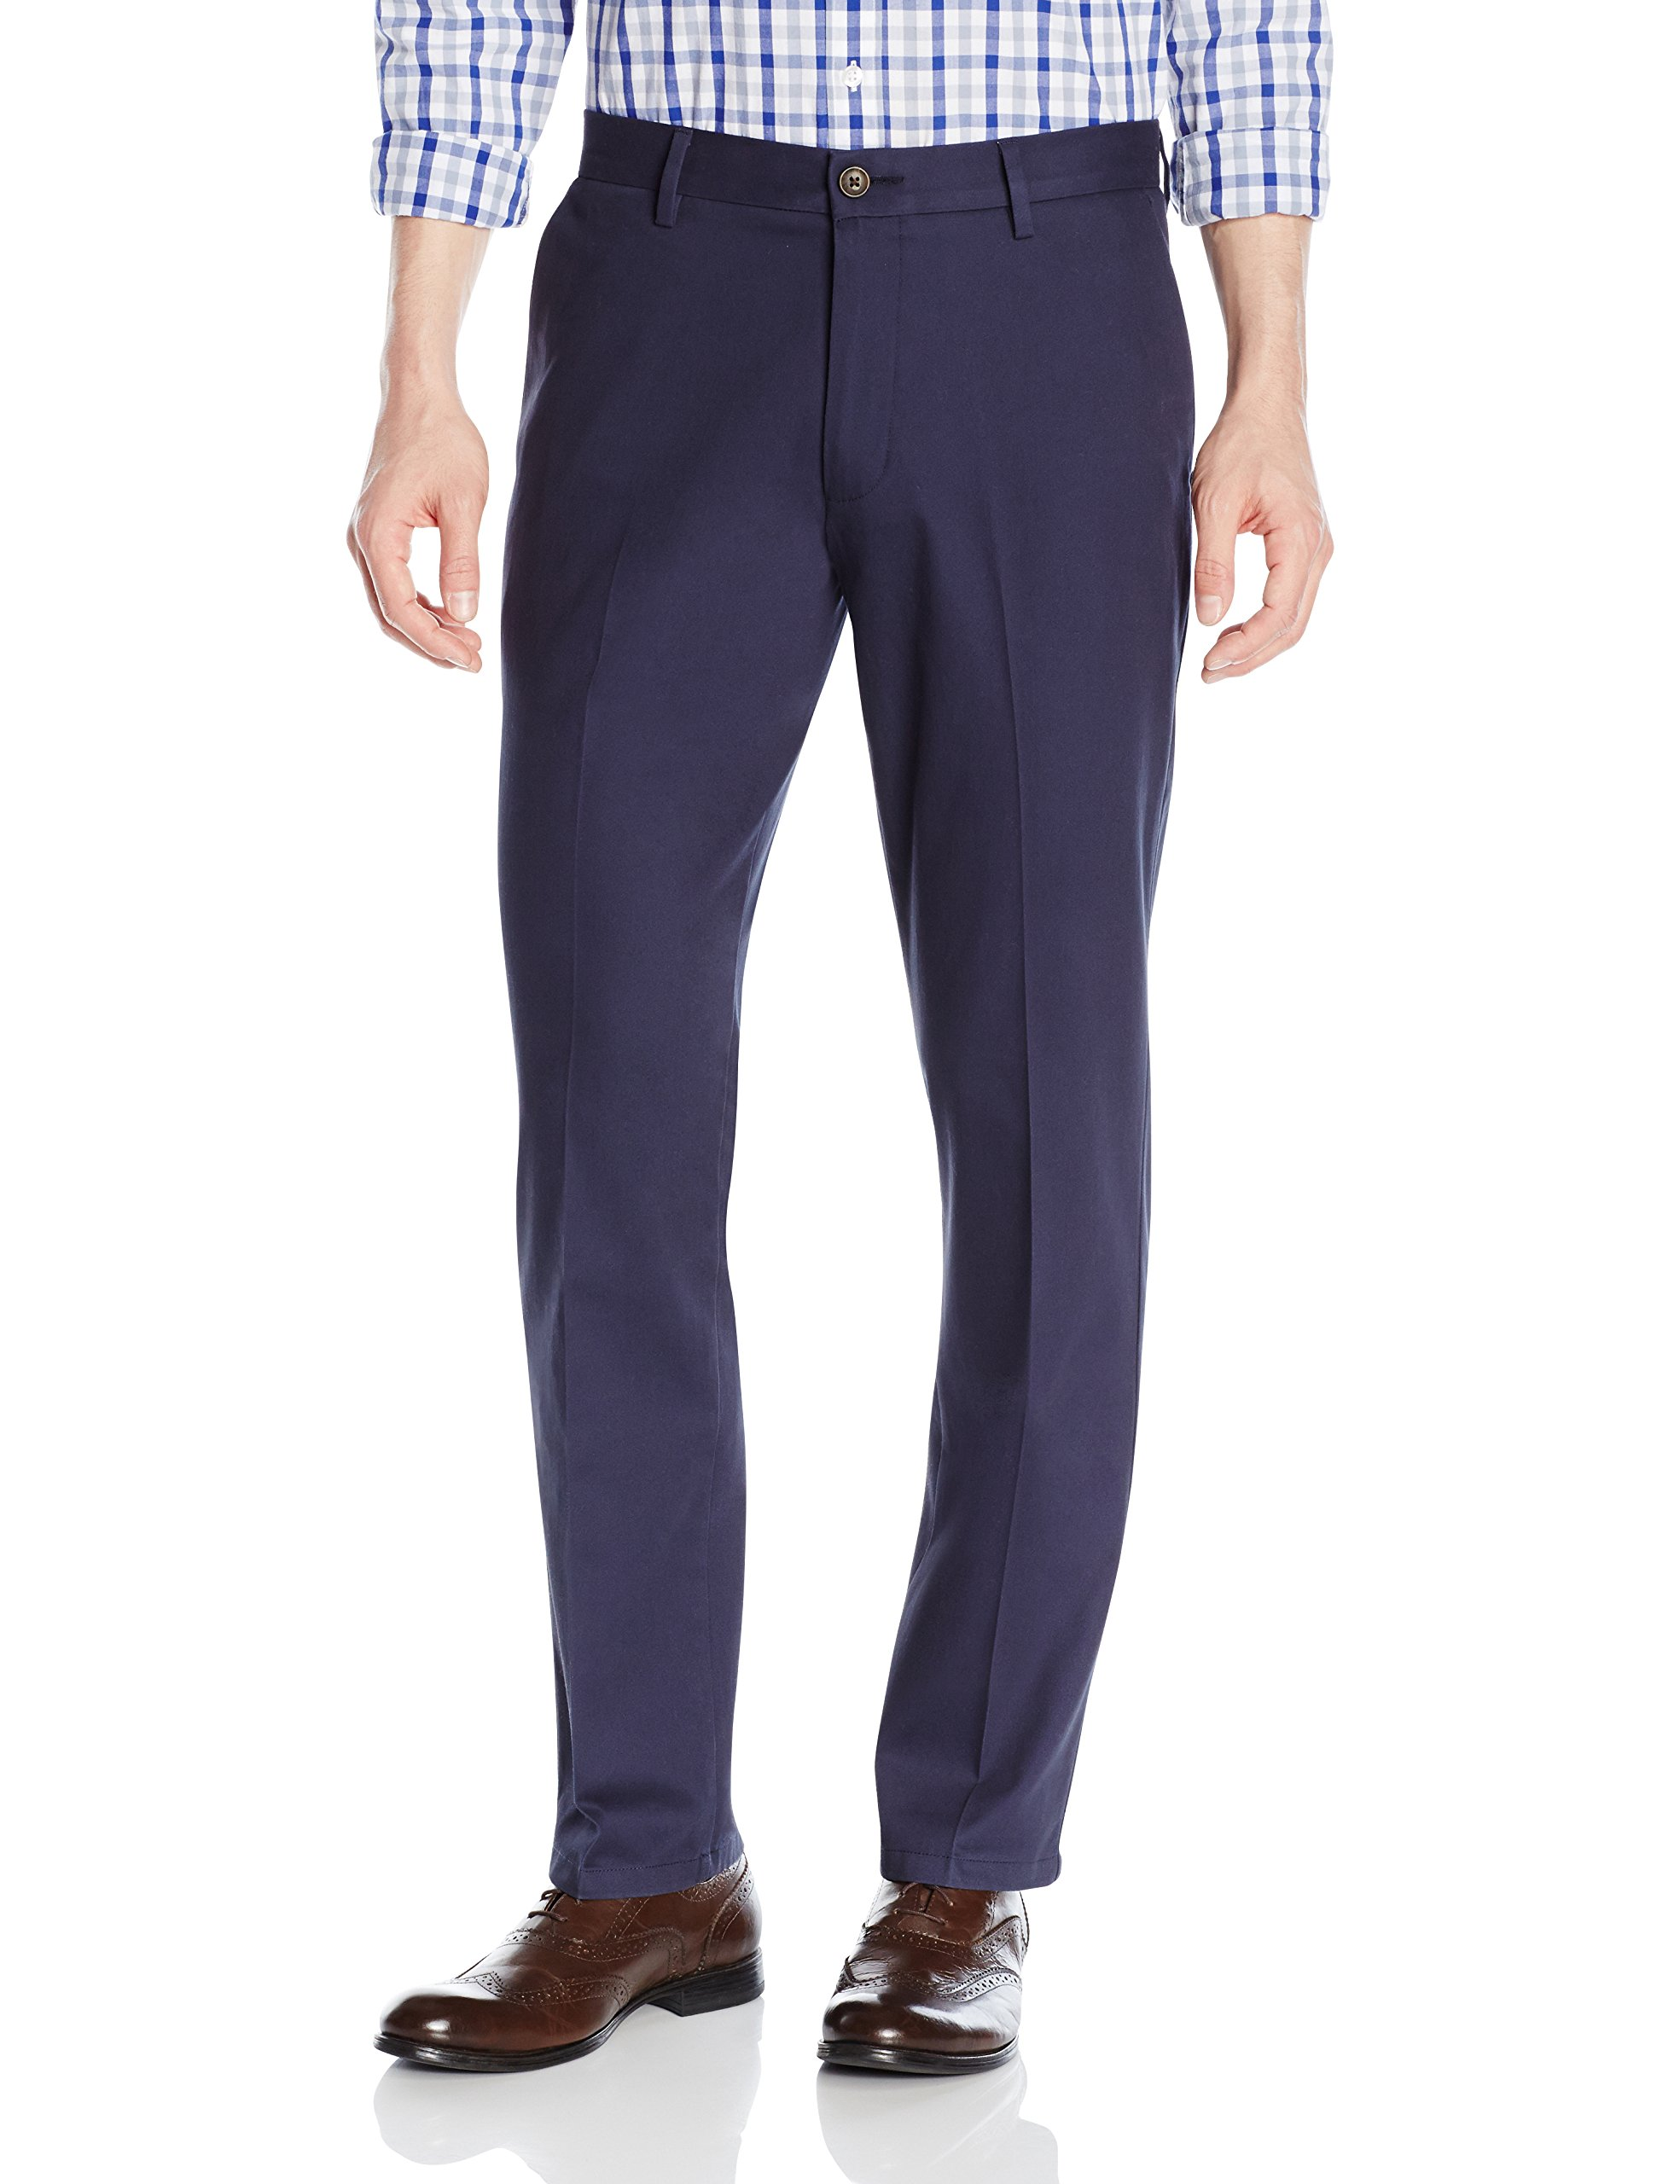 Goodthreads Men's Straight-Fit Wrinkle-Free Dress Chino Pant, Navy, 32W x 34L